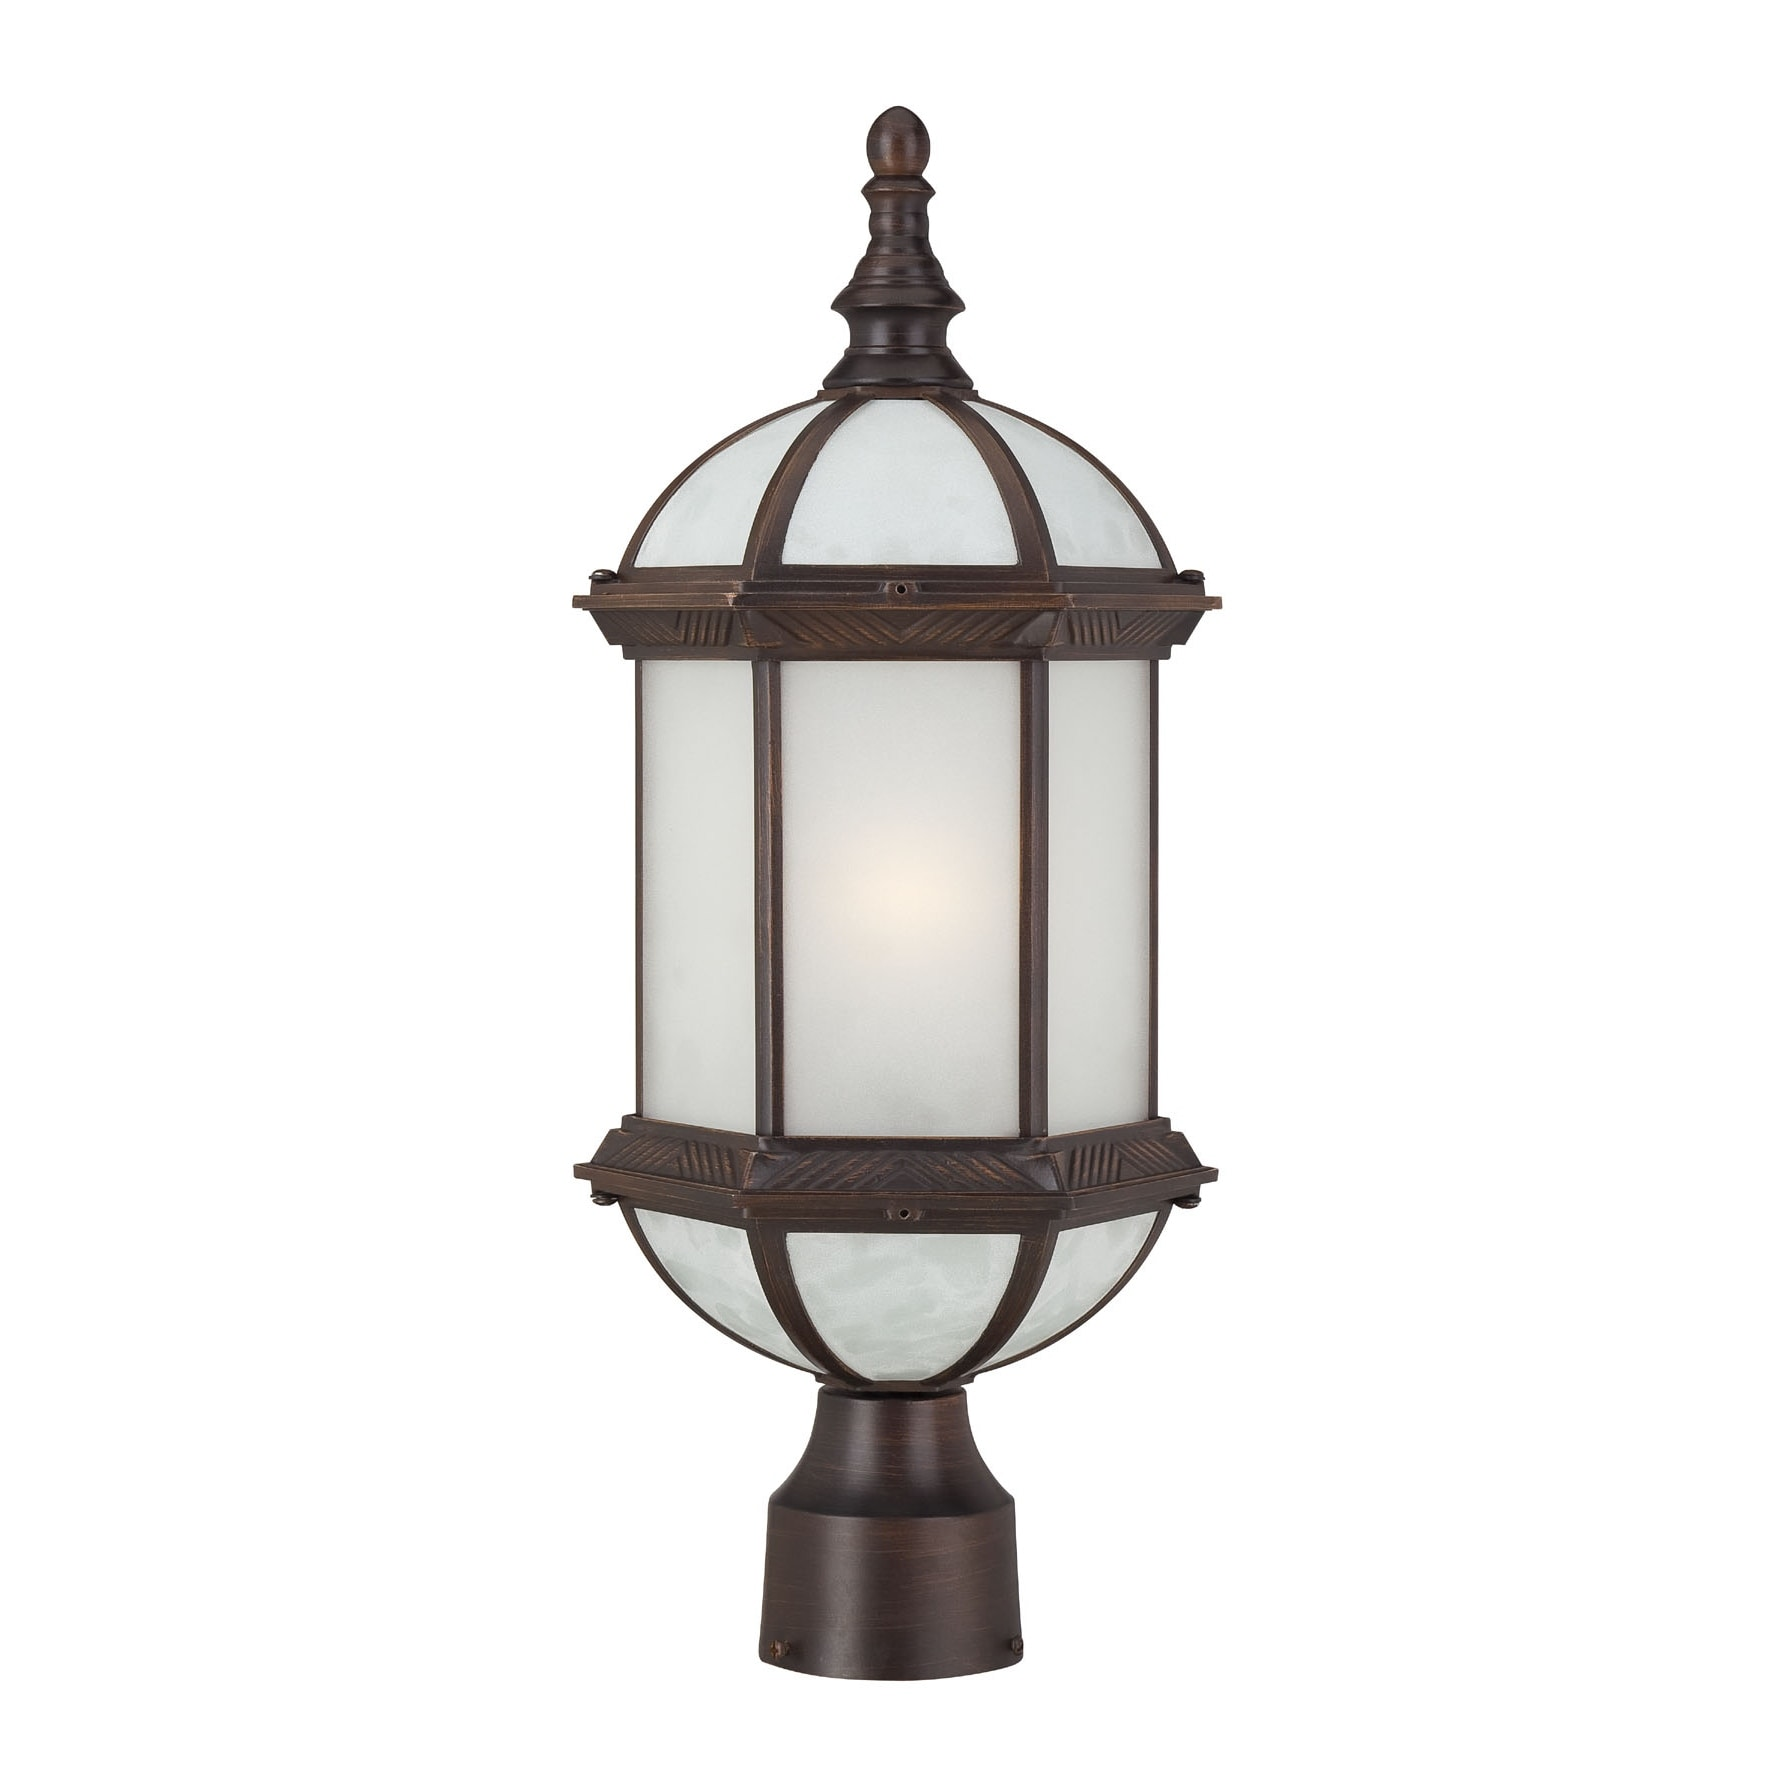 Nuvo Boxwood e light Rustic Bronze Beveled Glass19 Inch